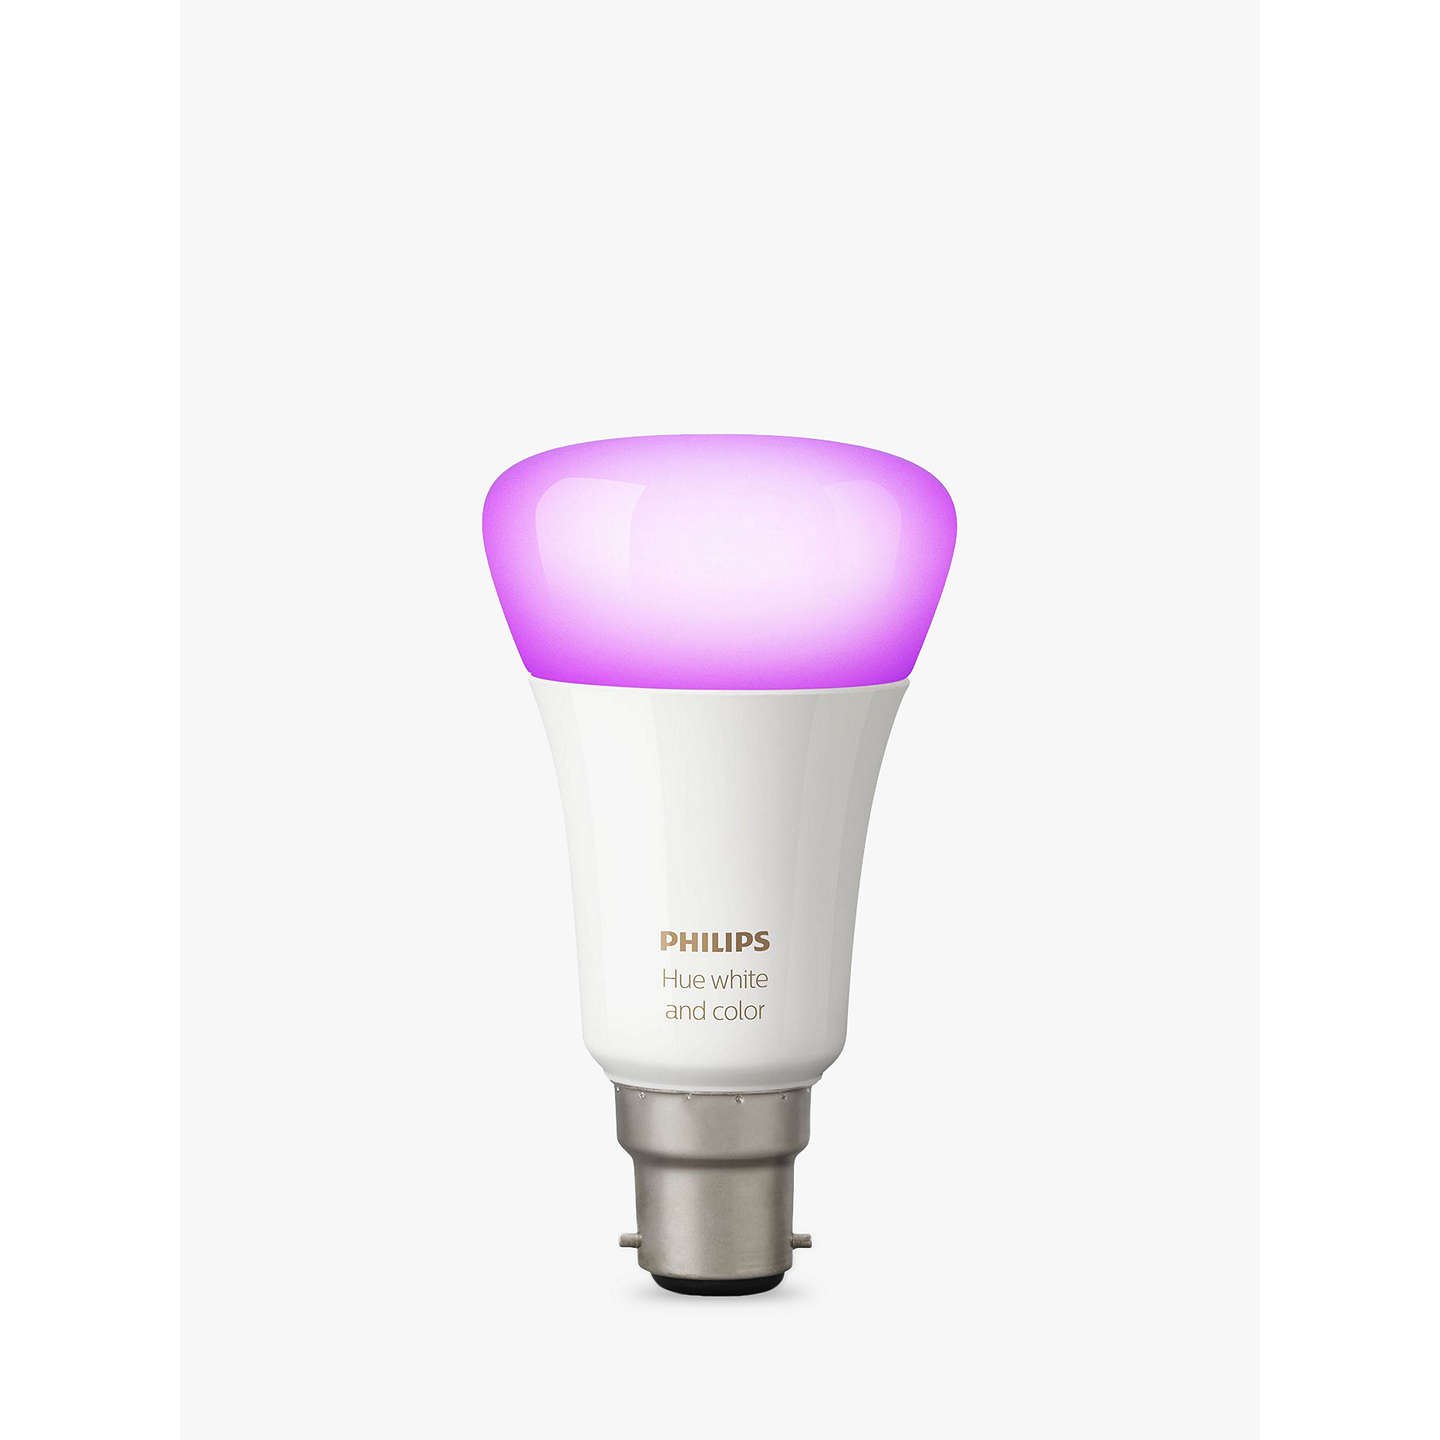 pk large a philips bulbs p bulb other ims wid en can like c led light no